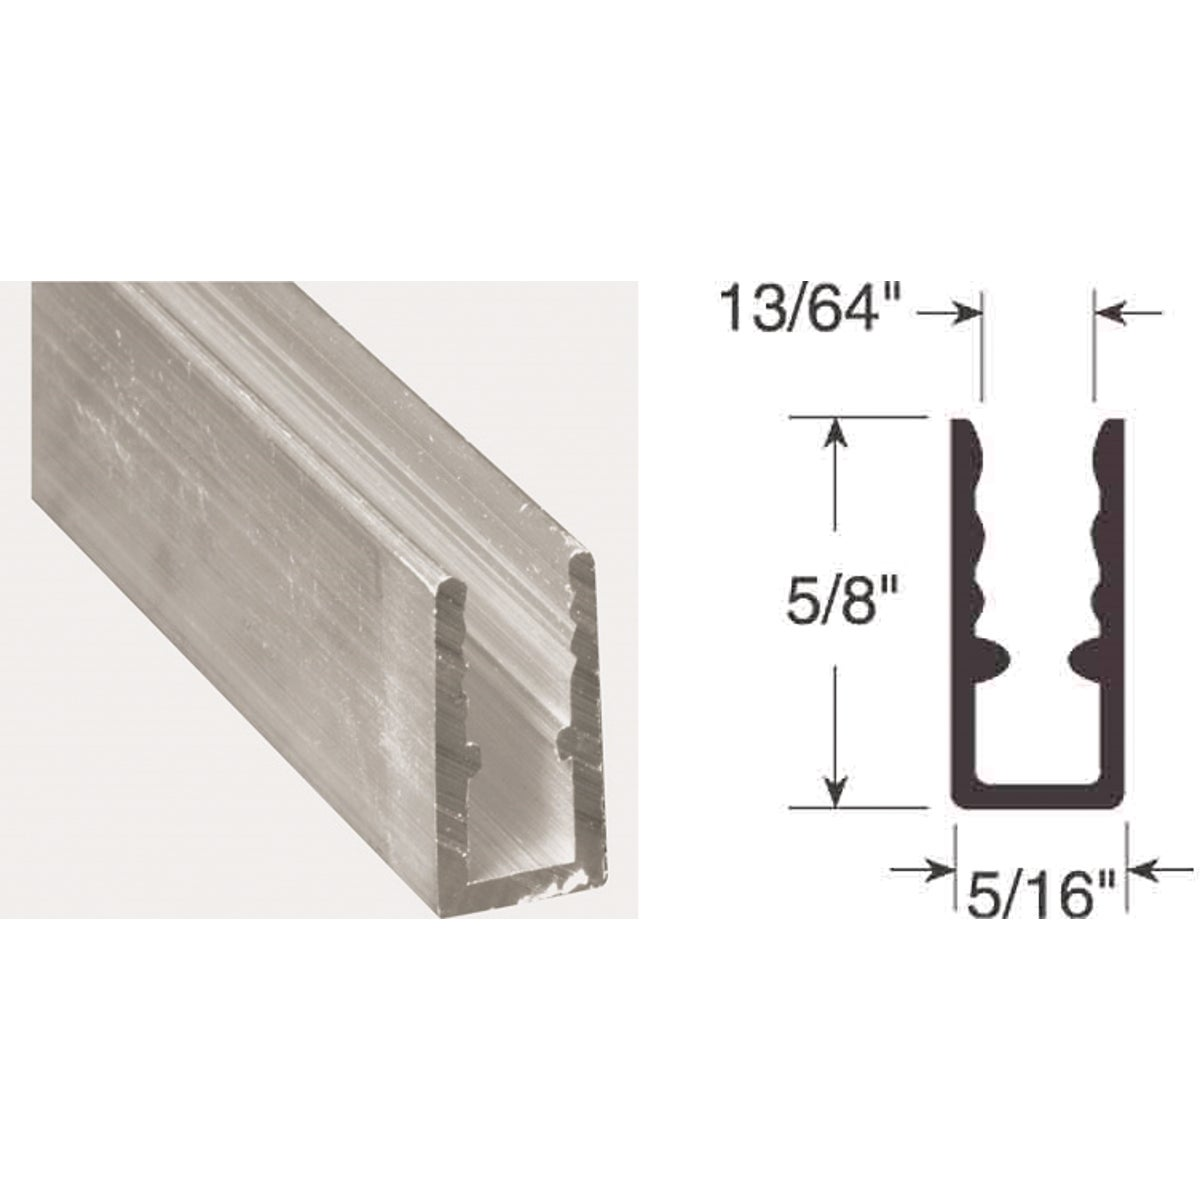 5/16X5/8X94 WINDOW FRAME - PL14164 by Prime Line Products